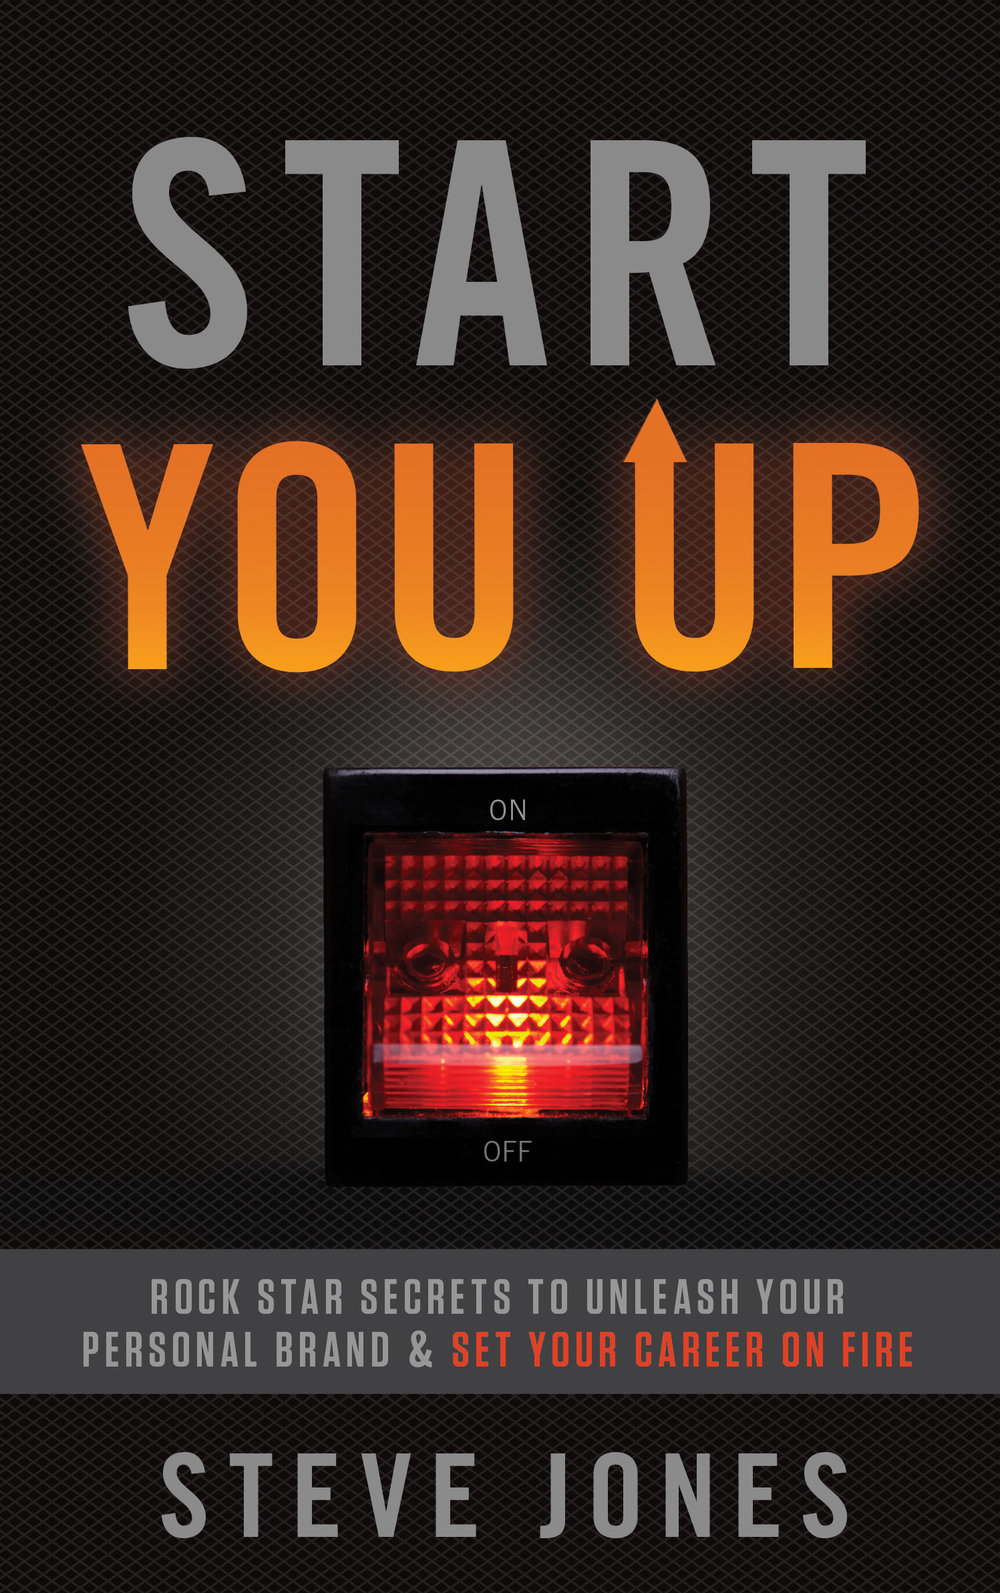 Order Start You Up now! - Steve's second book turns the rock star branding focus to the individual, showing you how to the use secrets of rock legends to set your career on fire. Learn how to differentiate yourself using the 5 P's of Personal Branding with Start You Up. Order Start You Up now!